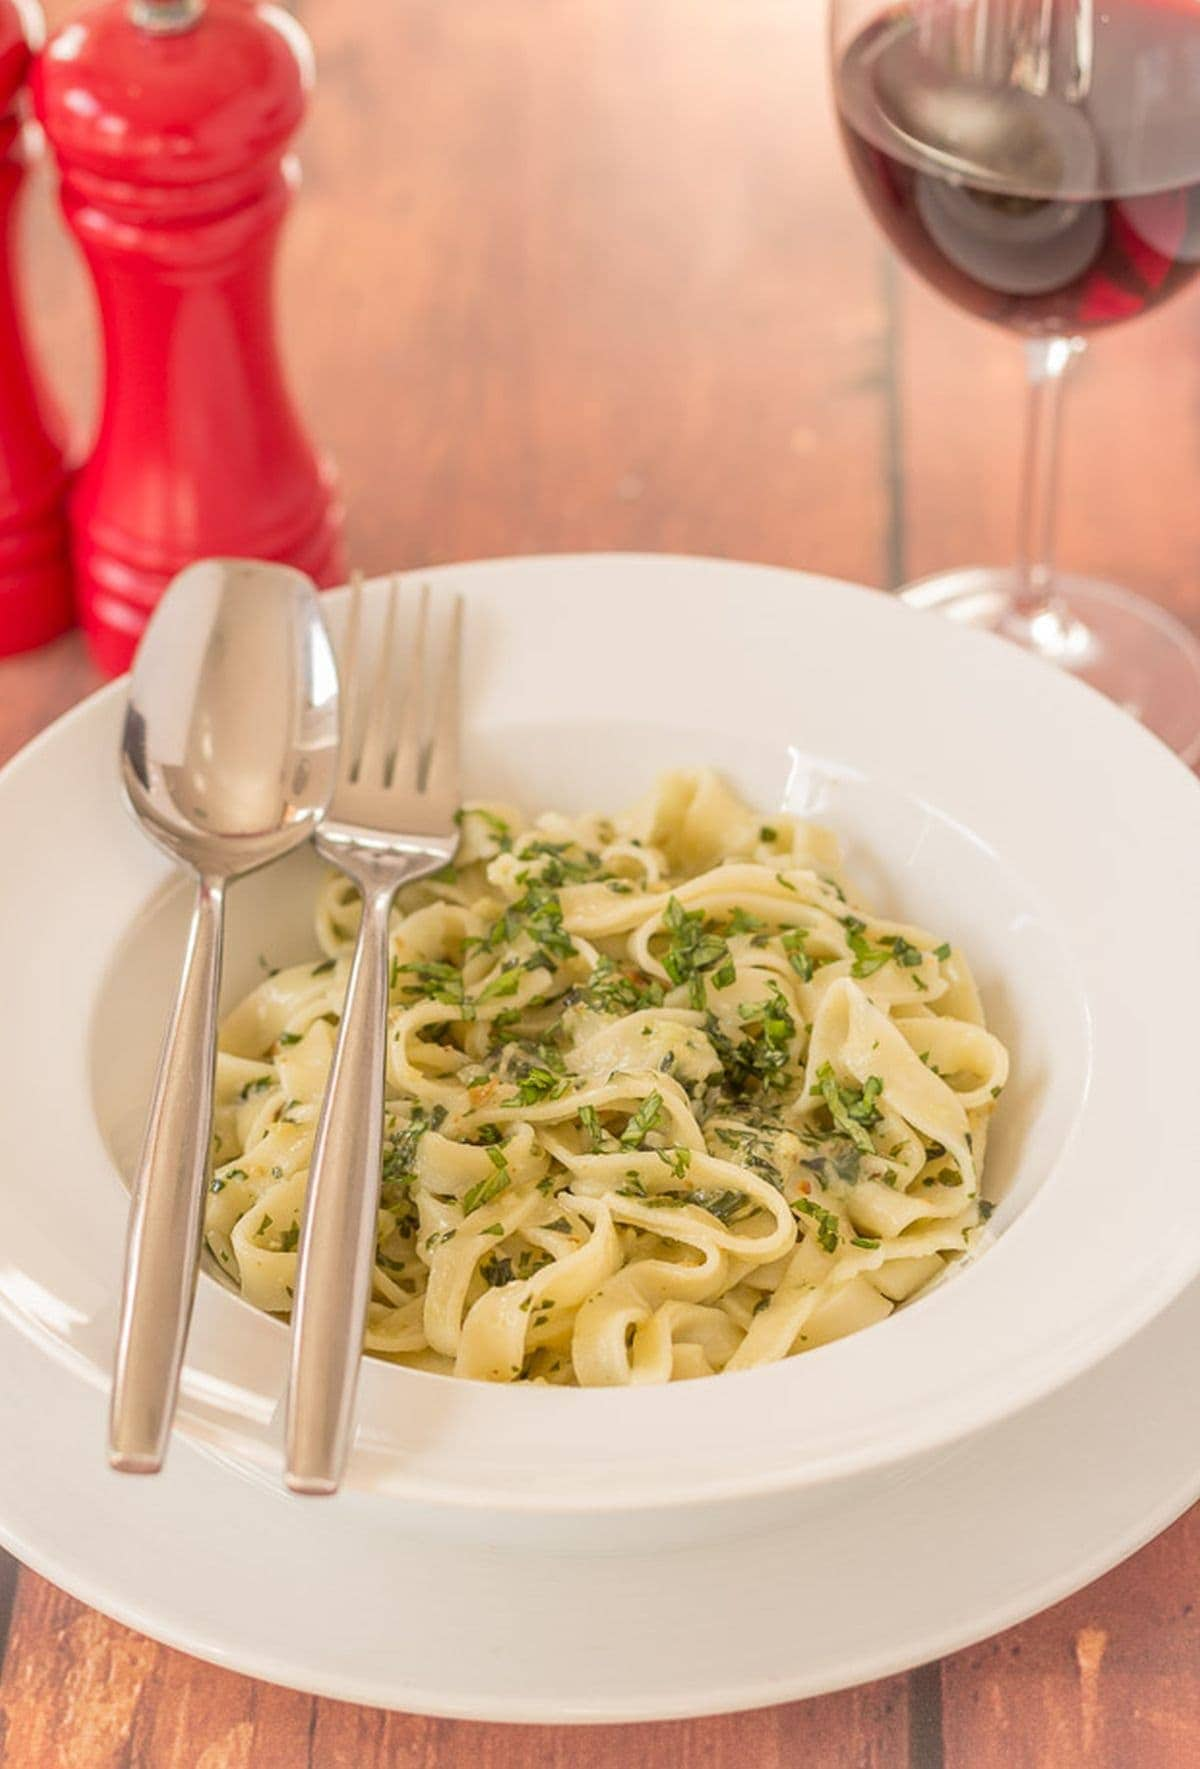 A bowl of homemade tagliatelle and pesto knife and fork to the side and a glass of red wine and salt and pepper shakers in the background.